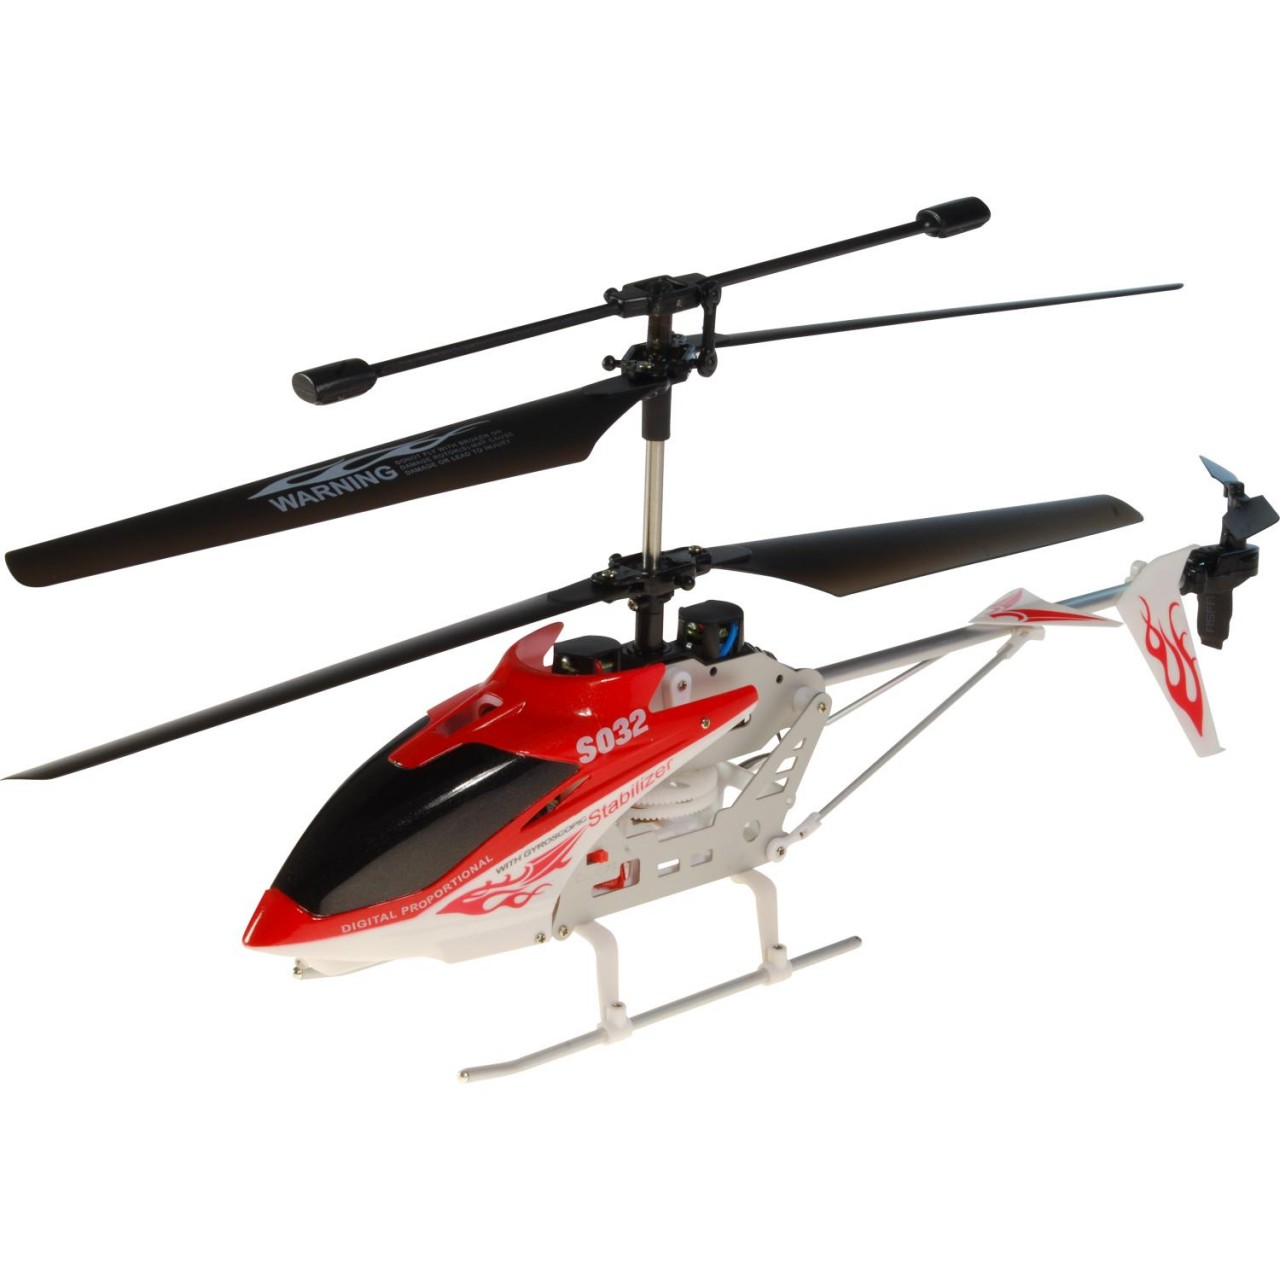 RC Helicopter Model For Beginner RC Helicopter Flyer 1280x1280